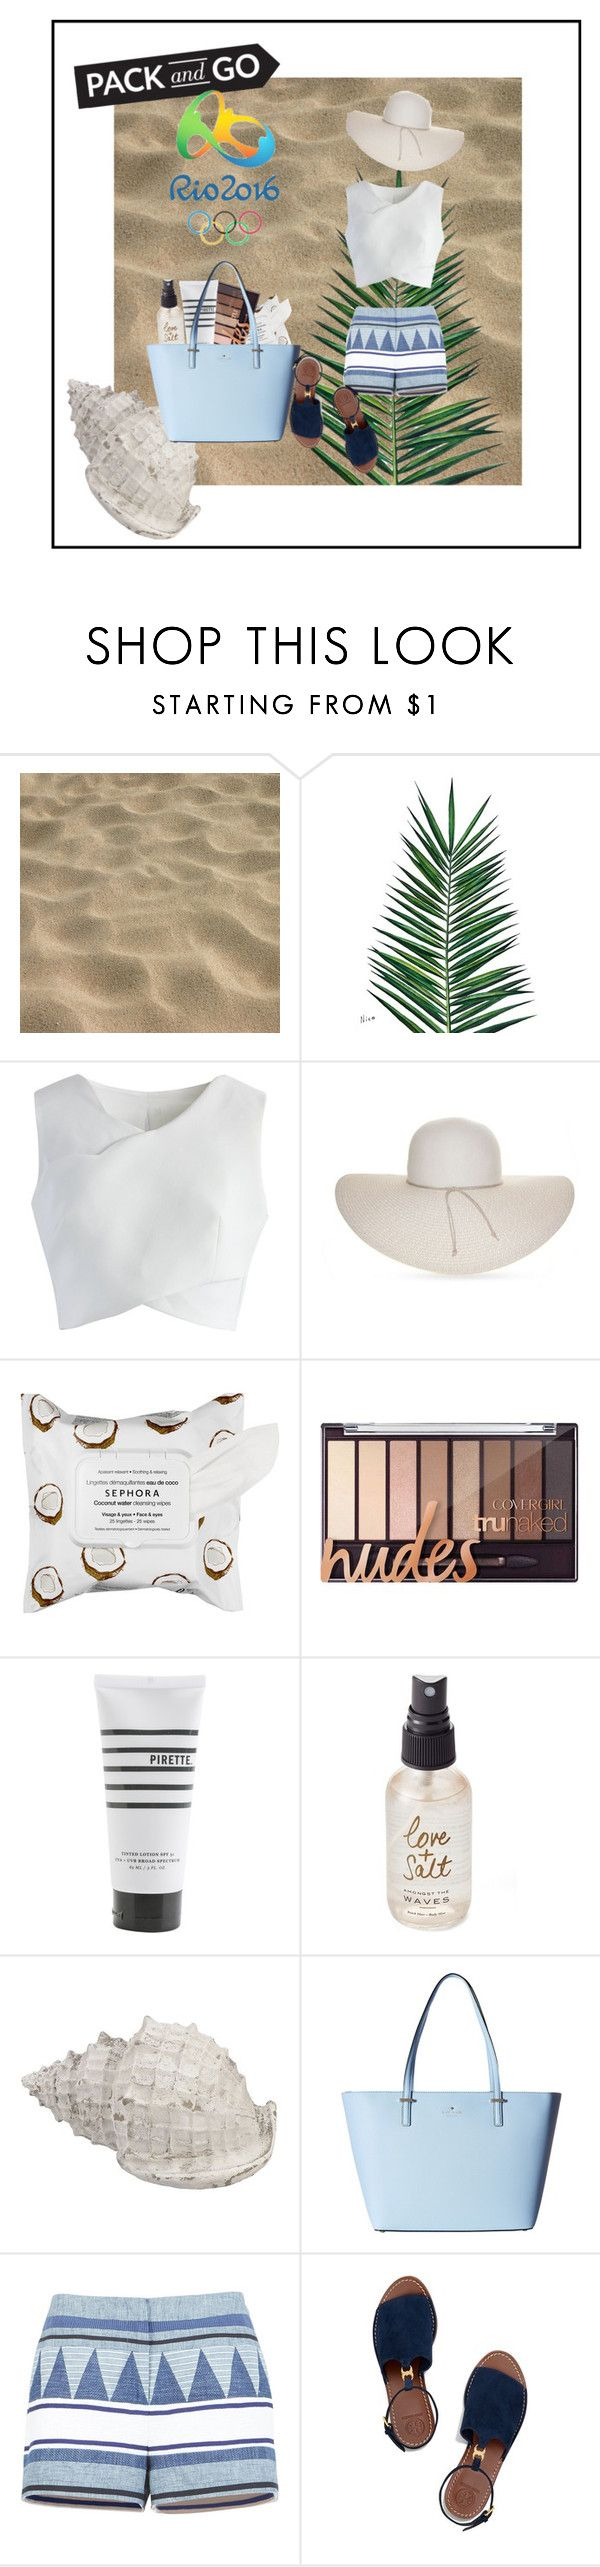 """Rio - Pack and GO!"" by ludmilisima on Polyvore featuring moda, Nika, Chicwish, Nine West, Sephora Collection, Pirette, Olivine, Kate Spade, BCBGMAXAZRIA y Tory Burch"